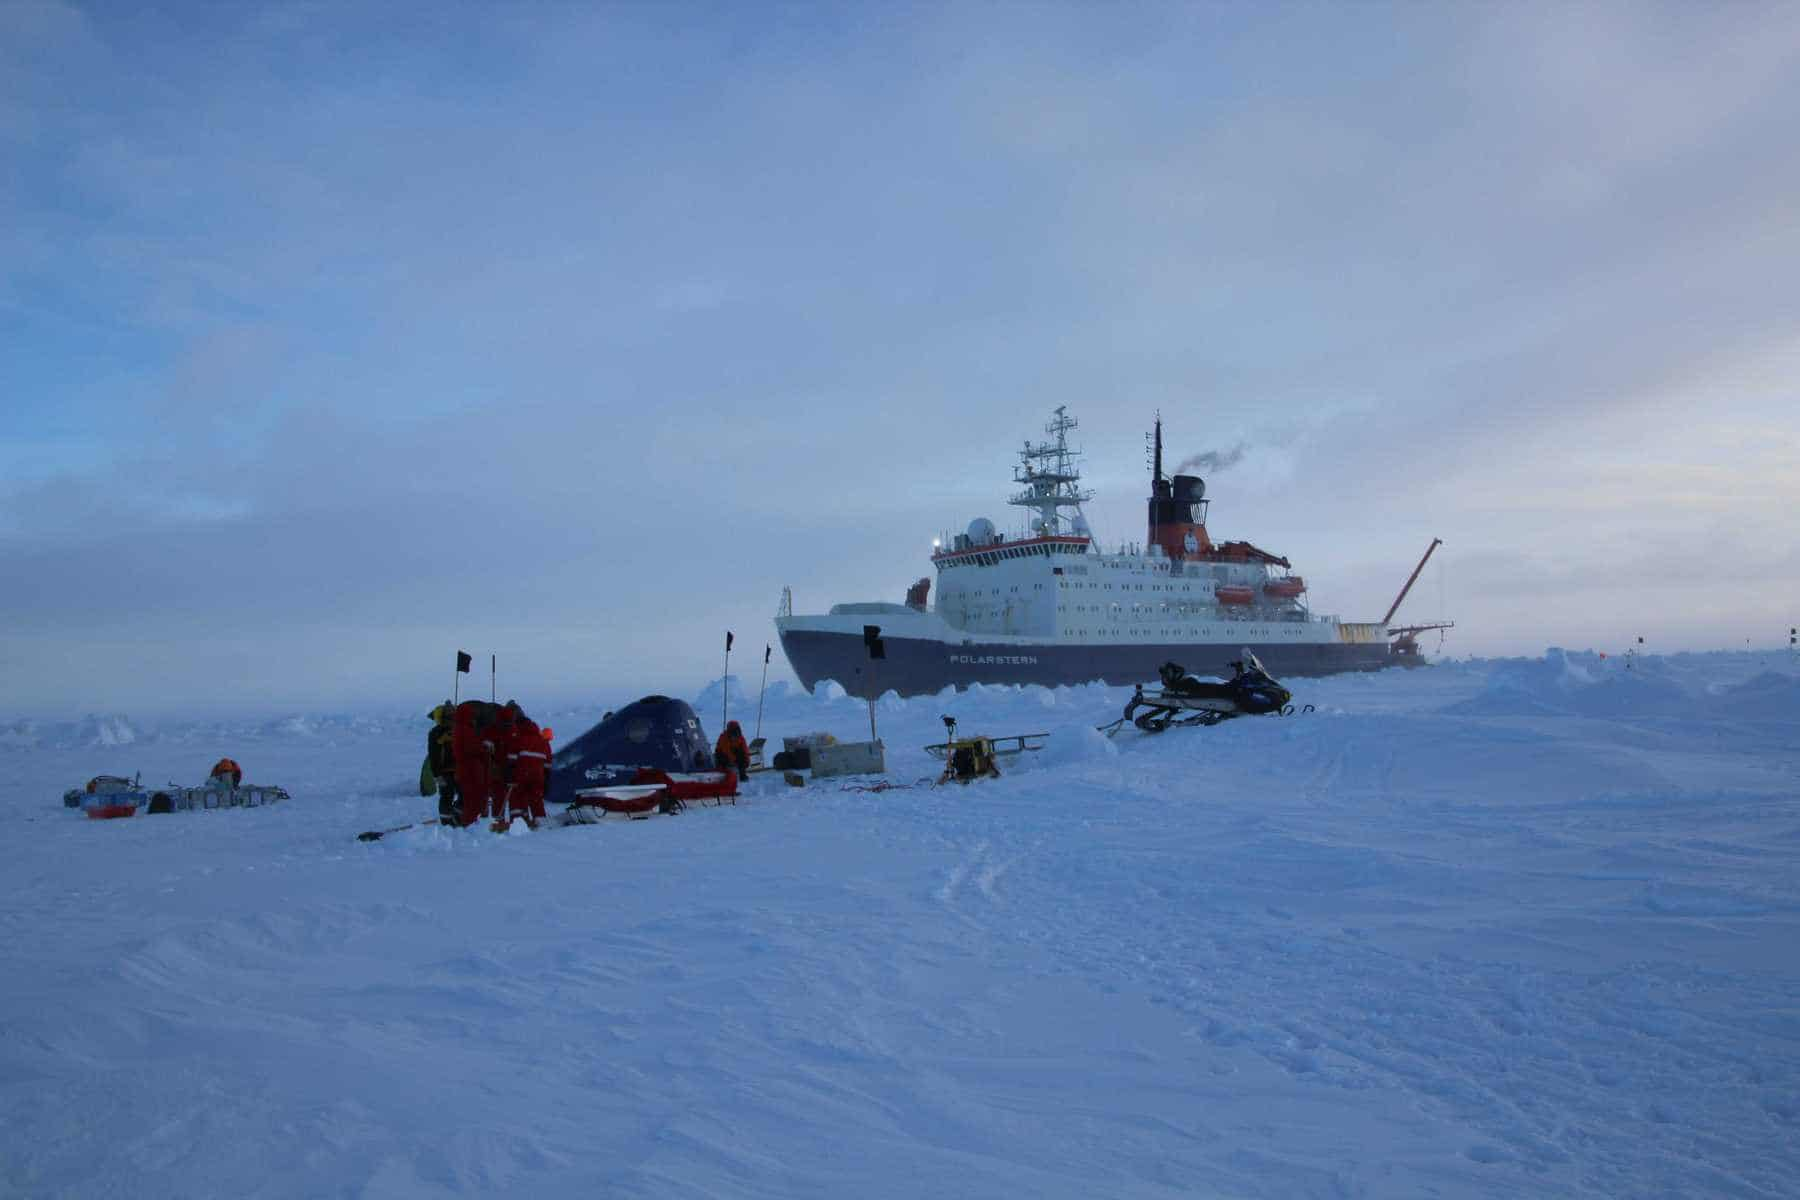 Interview: The Arctic is closer than you think